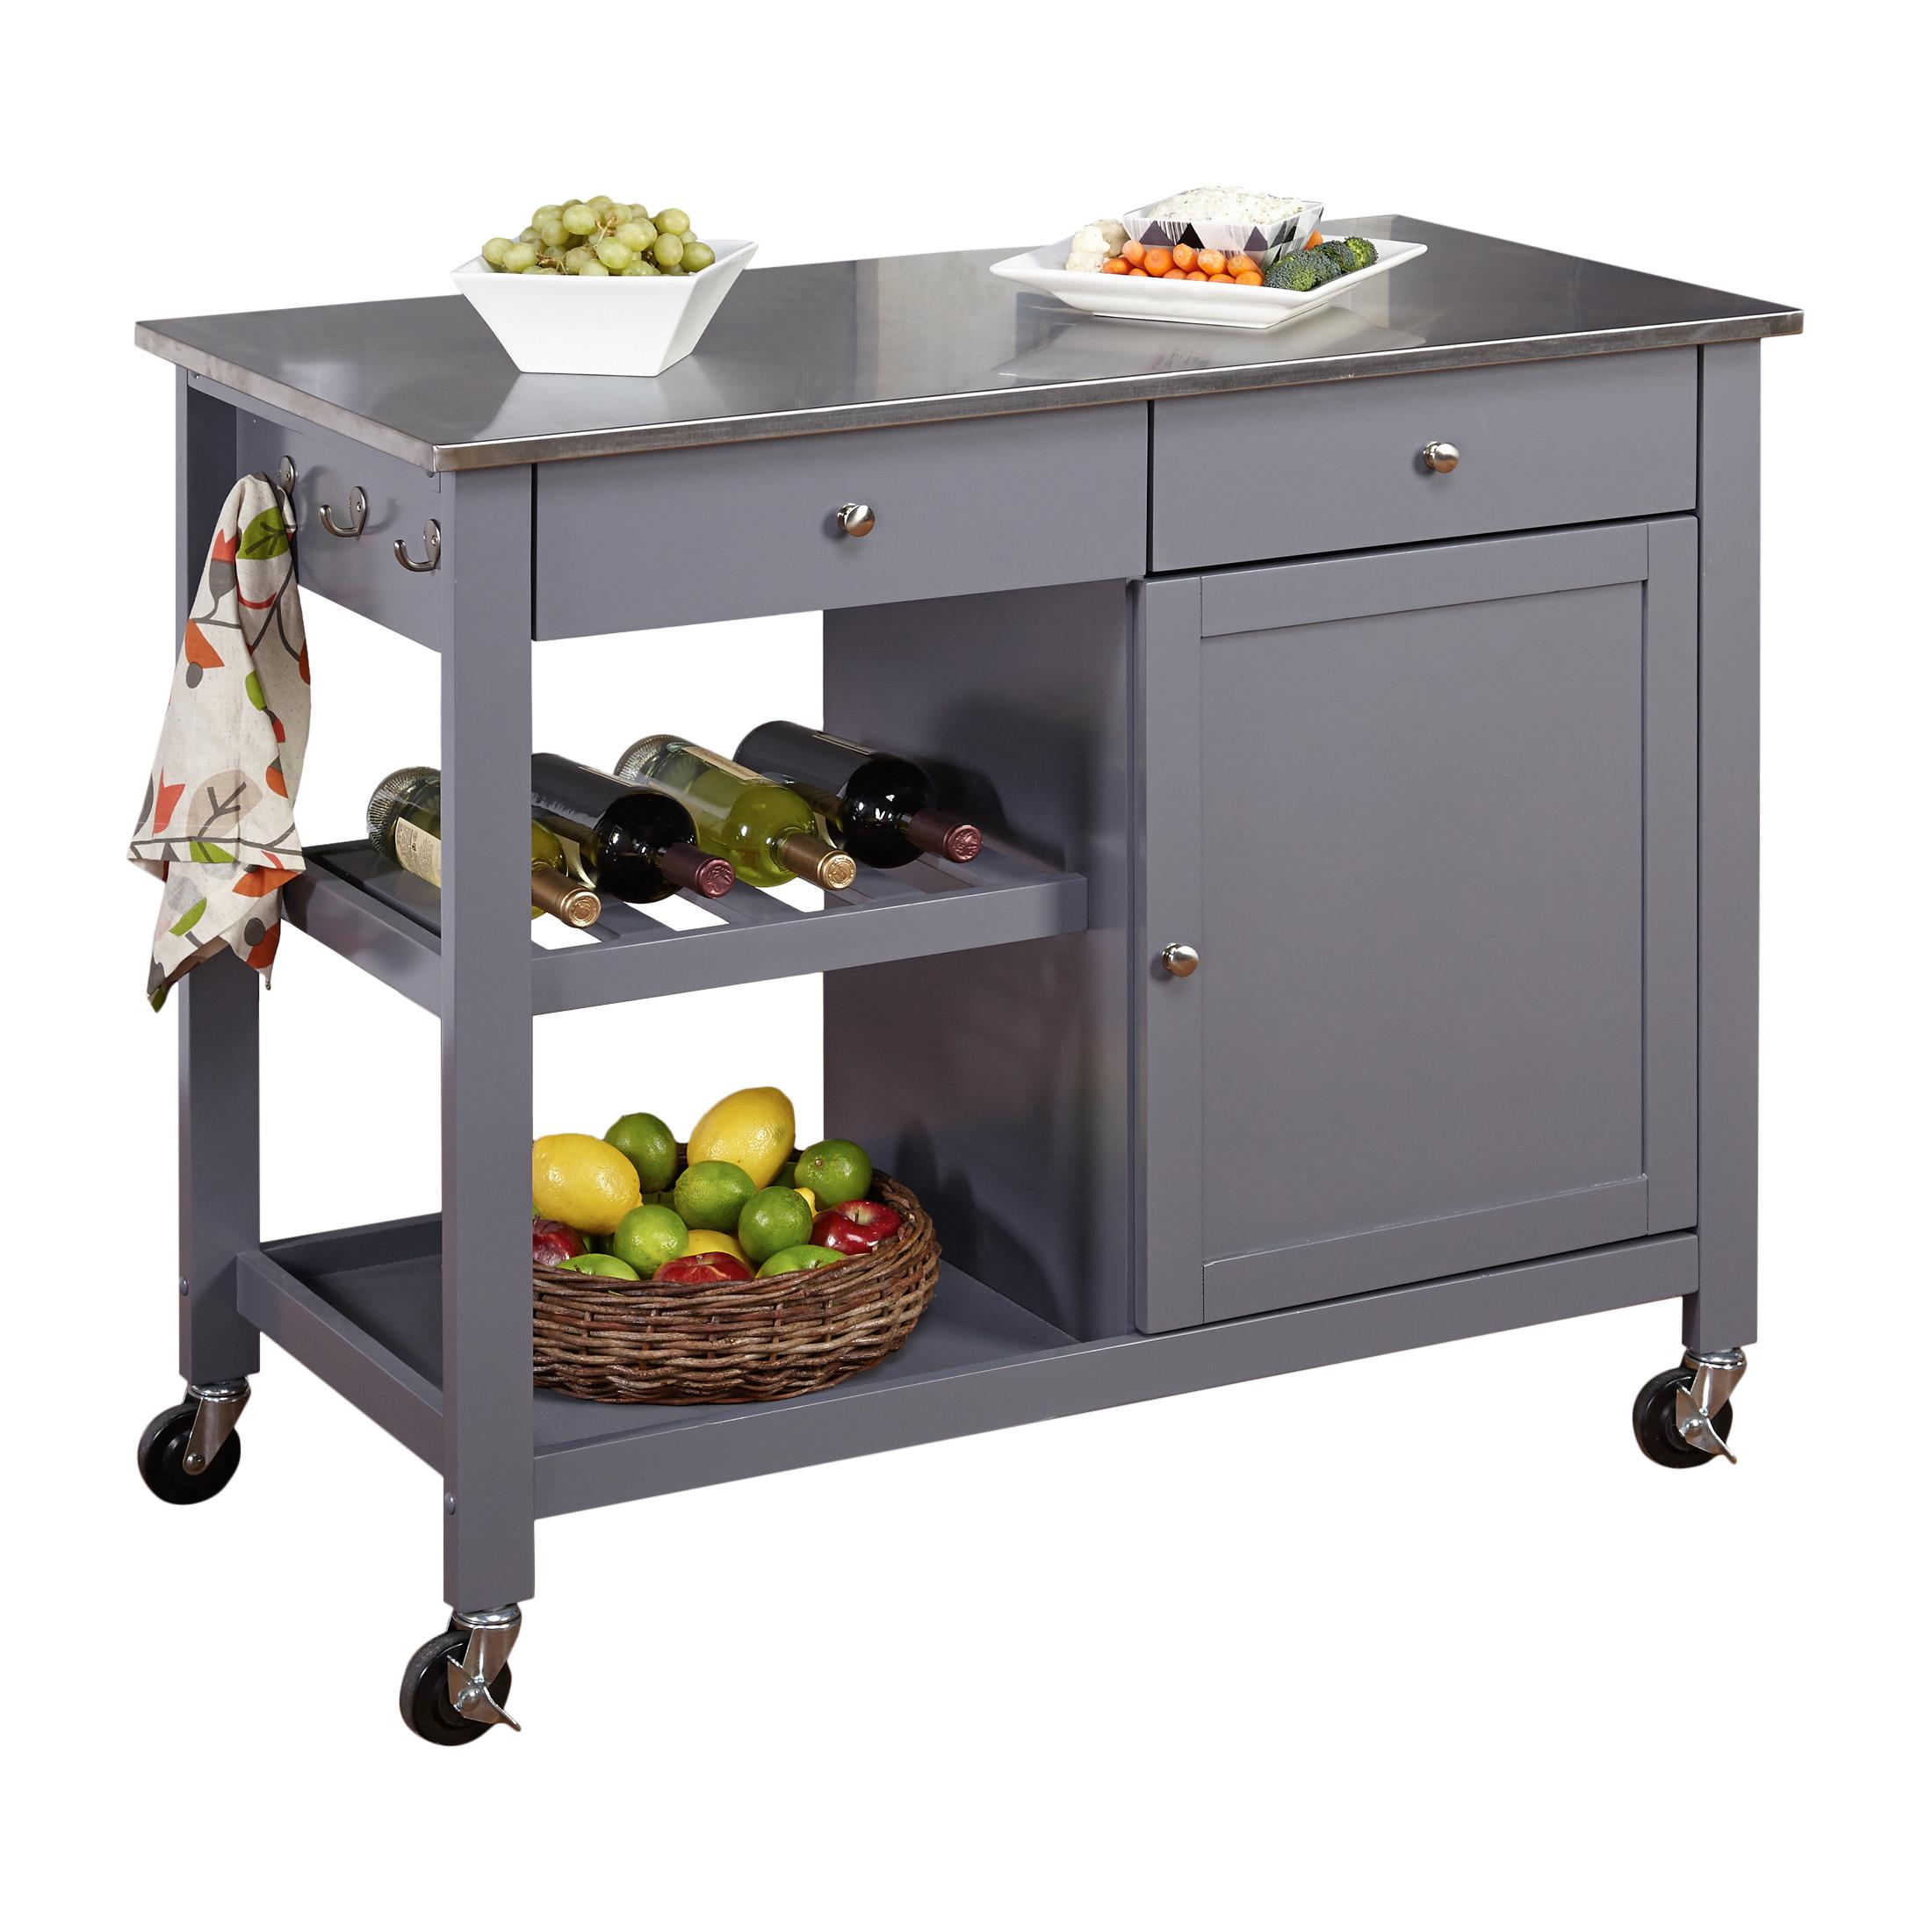 Tms Columbus Kitchen Island Stainless Steel Top